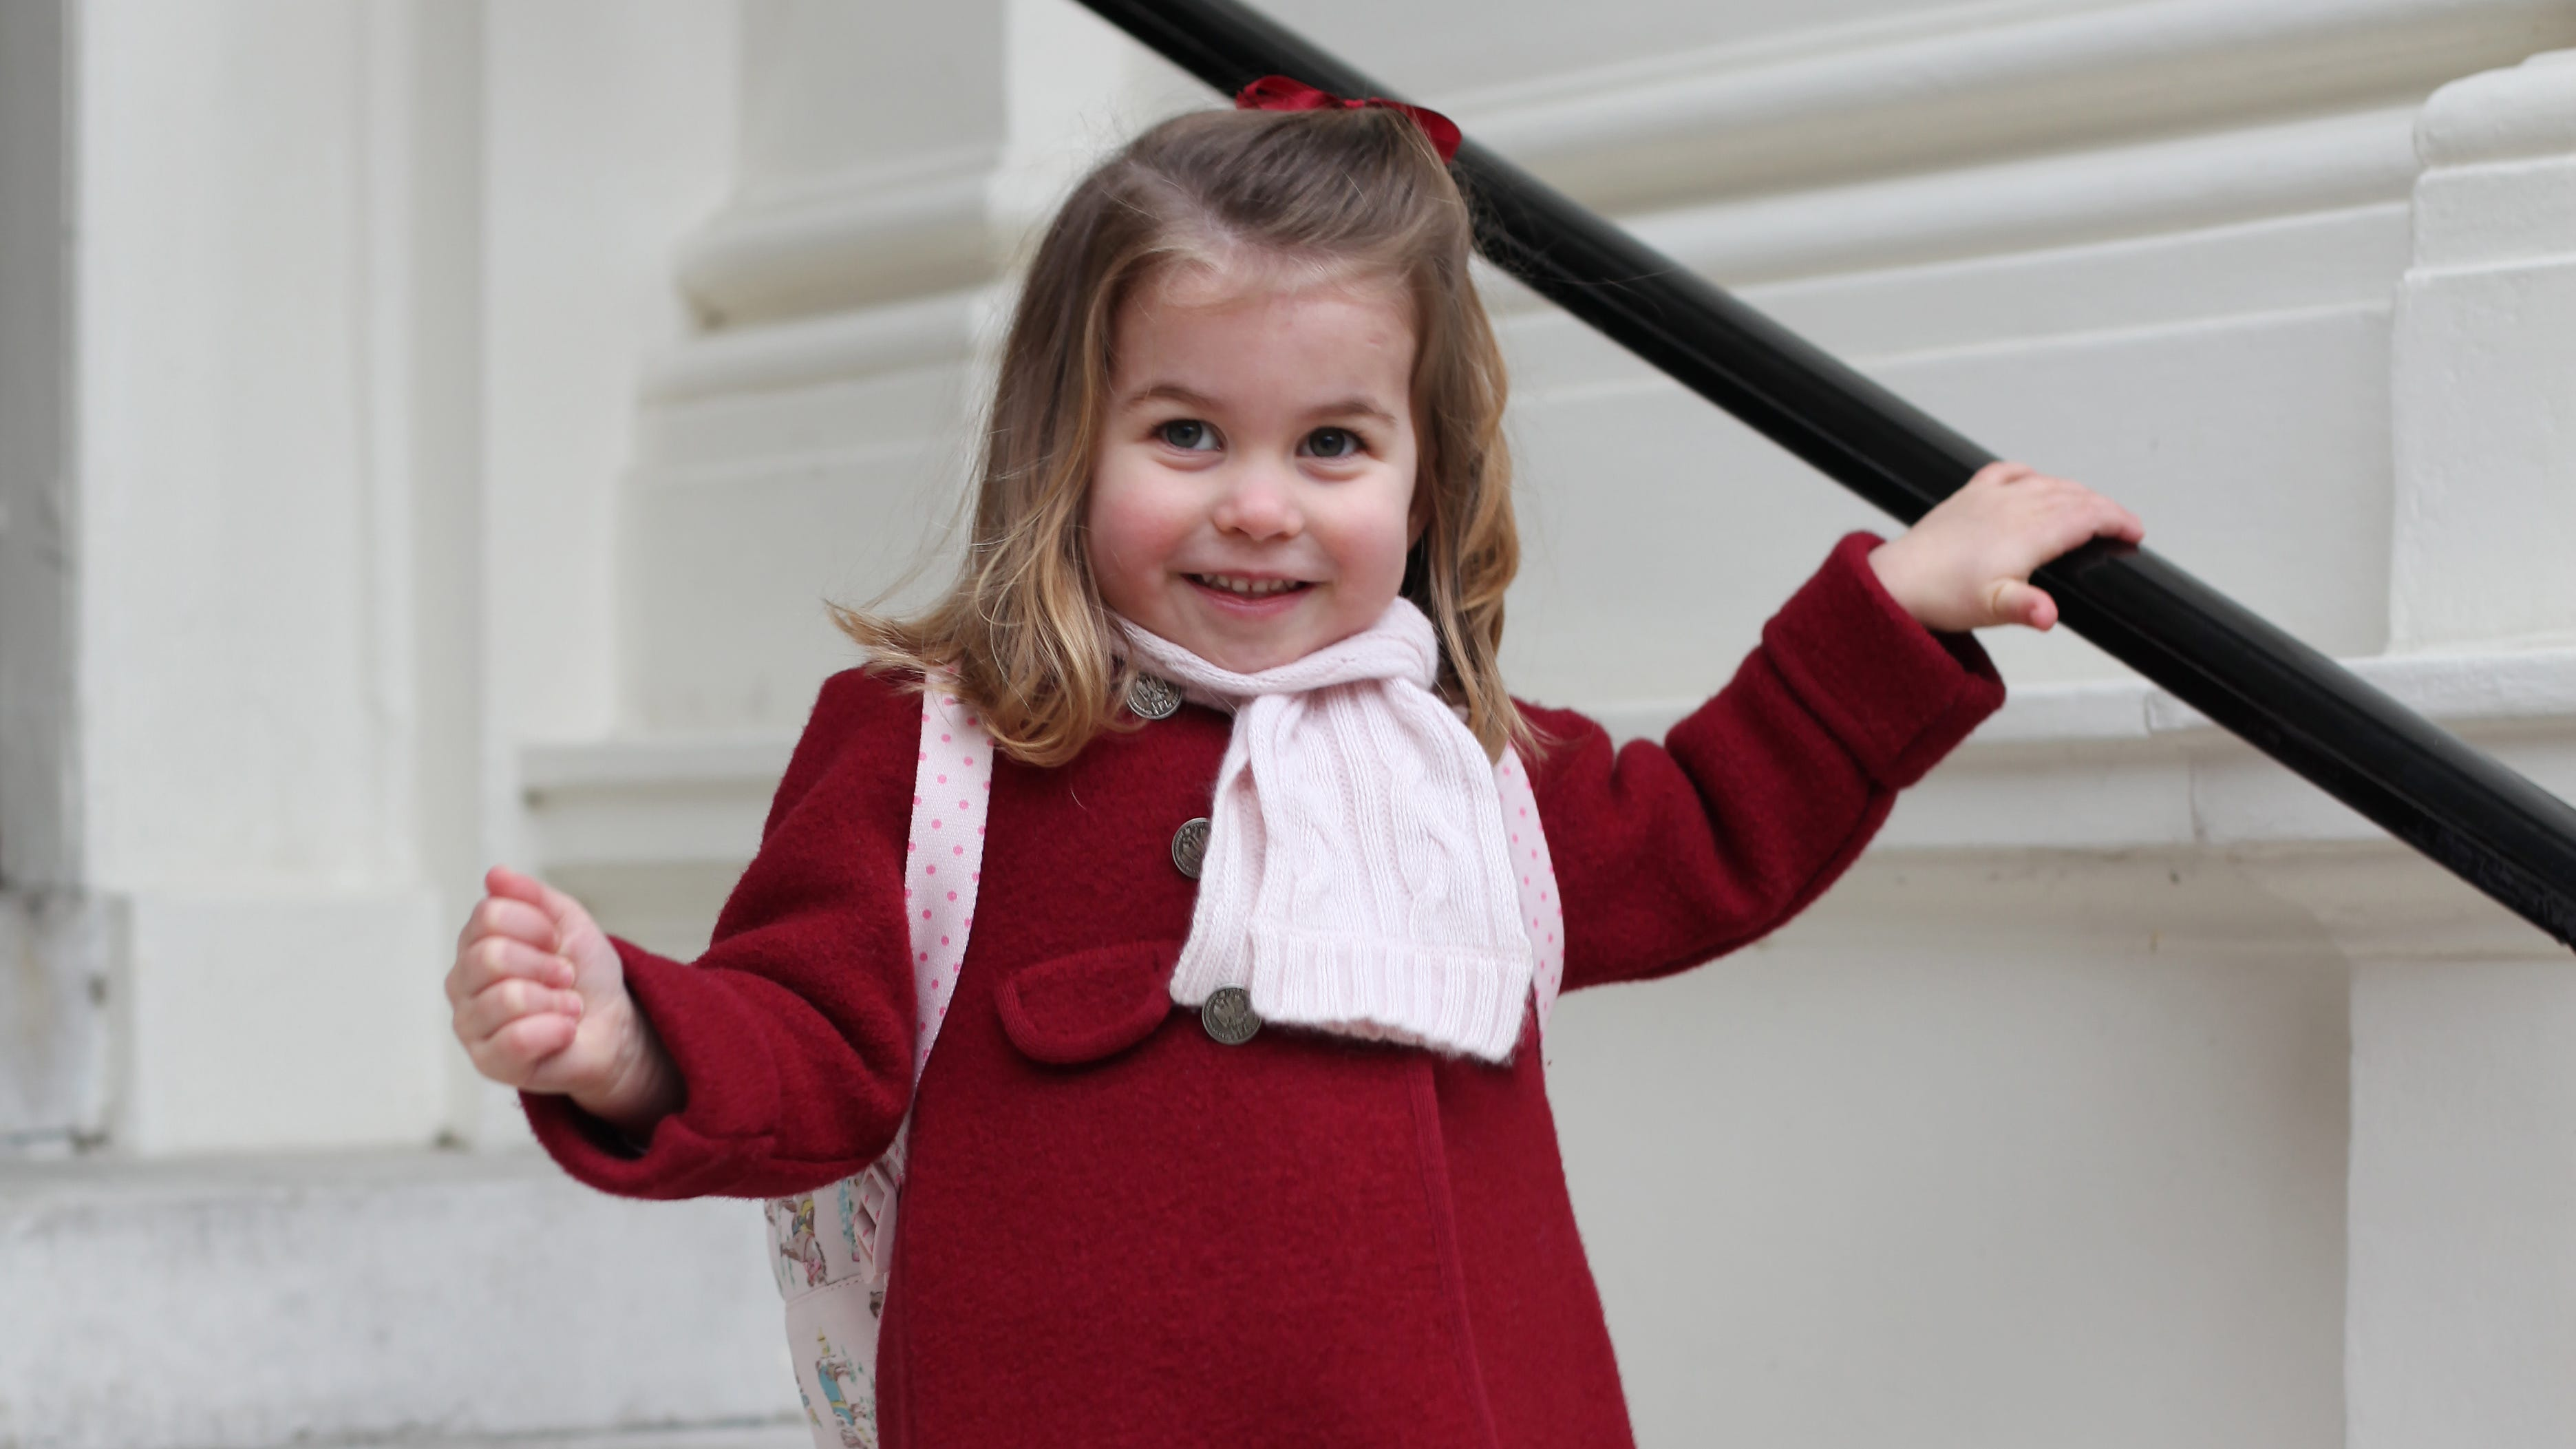 Duchess Kate snapped this photo of Princess Charlotte on her first day at the Willcocks Nursery School on Jan. 8, 2018.